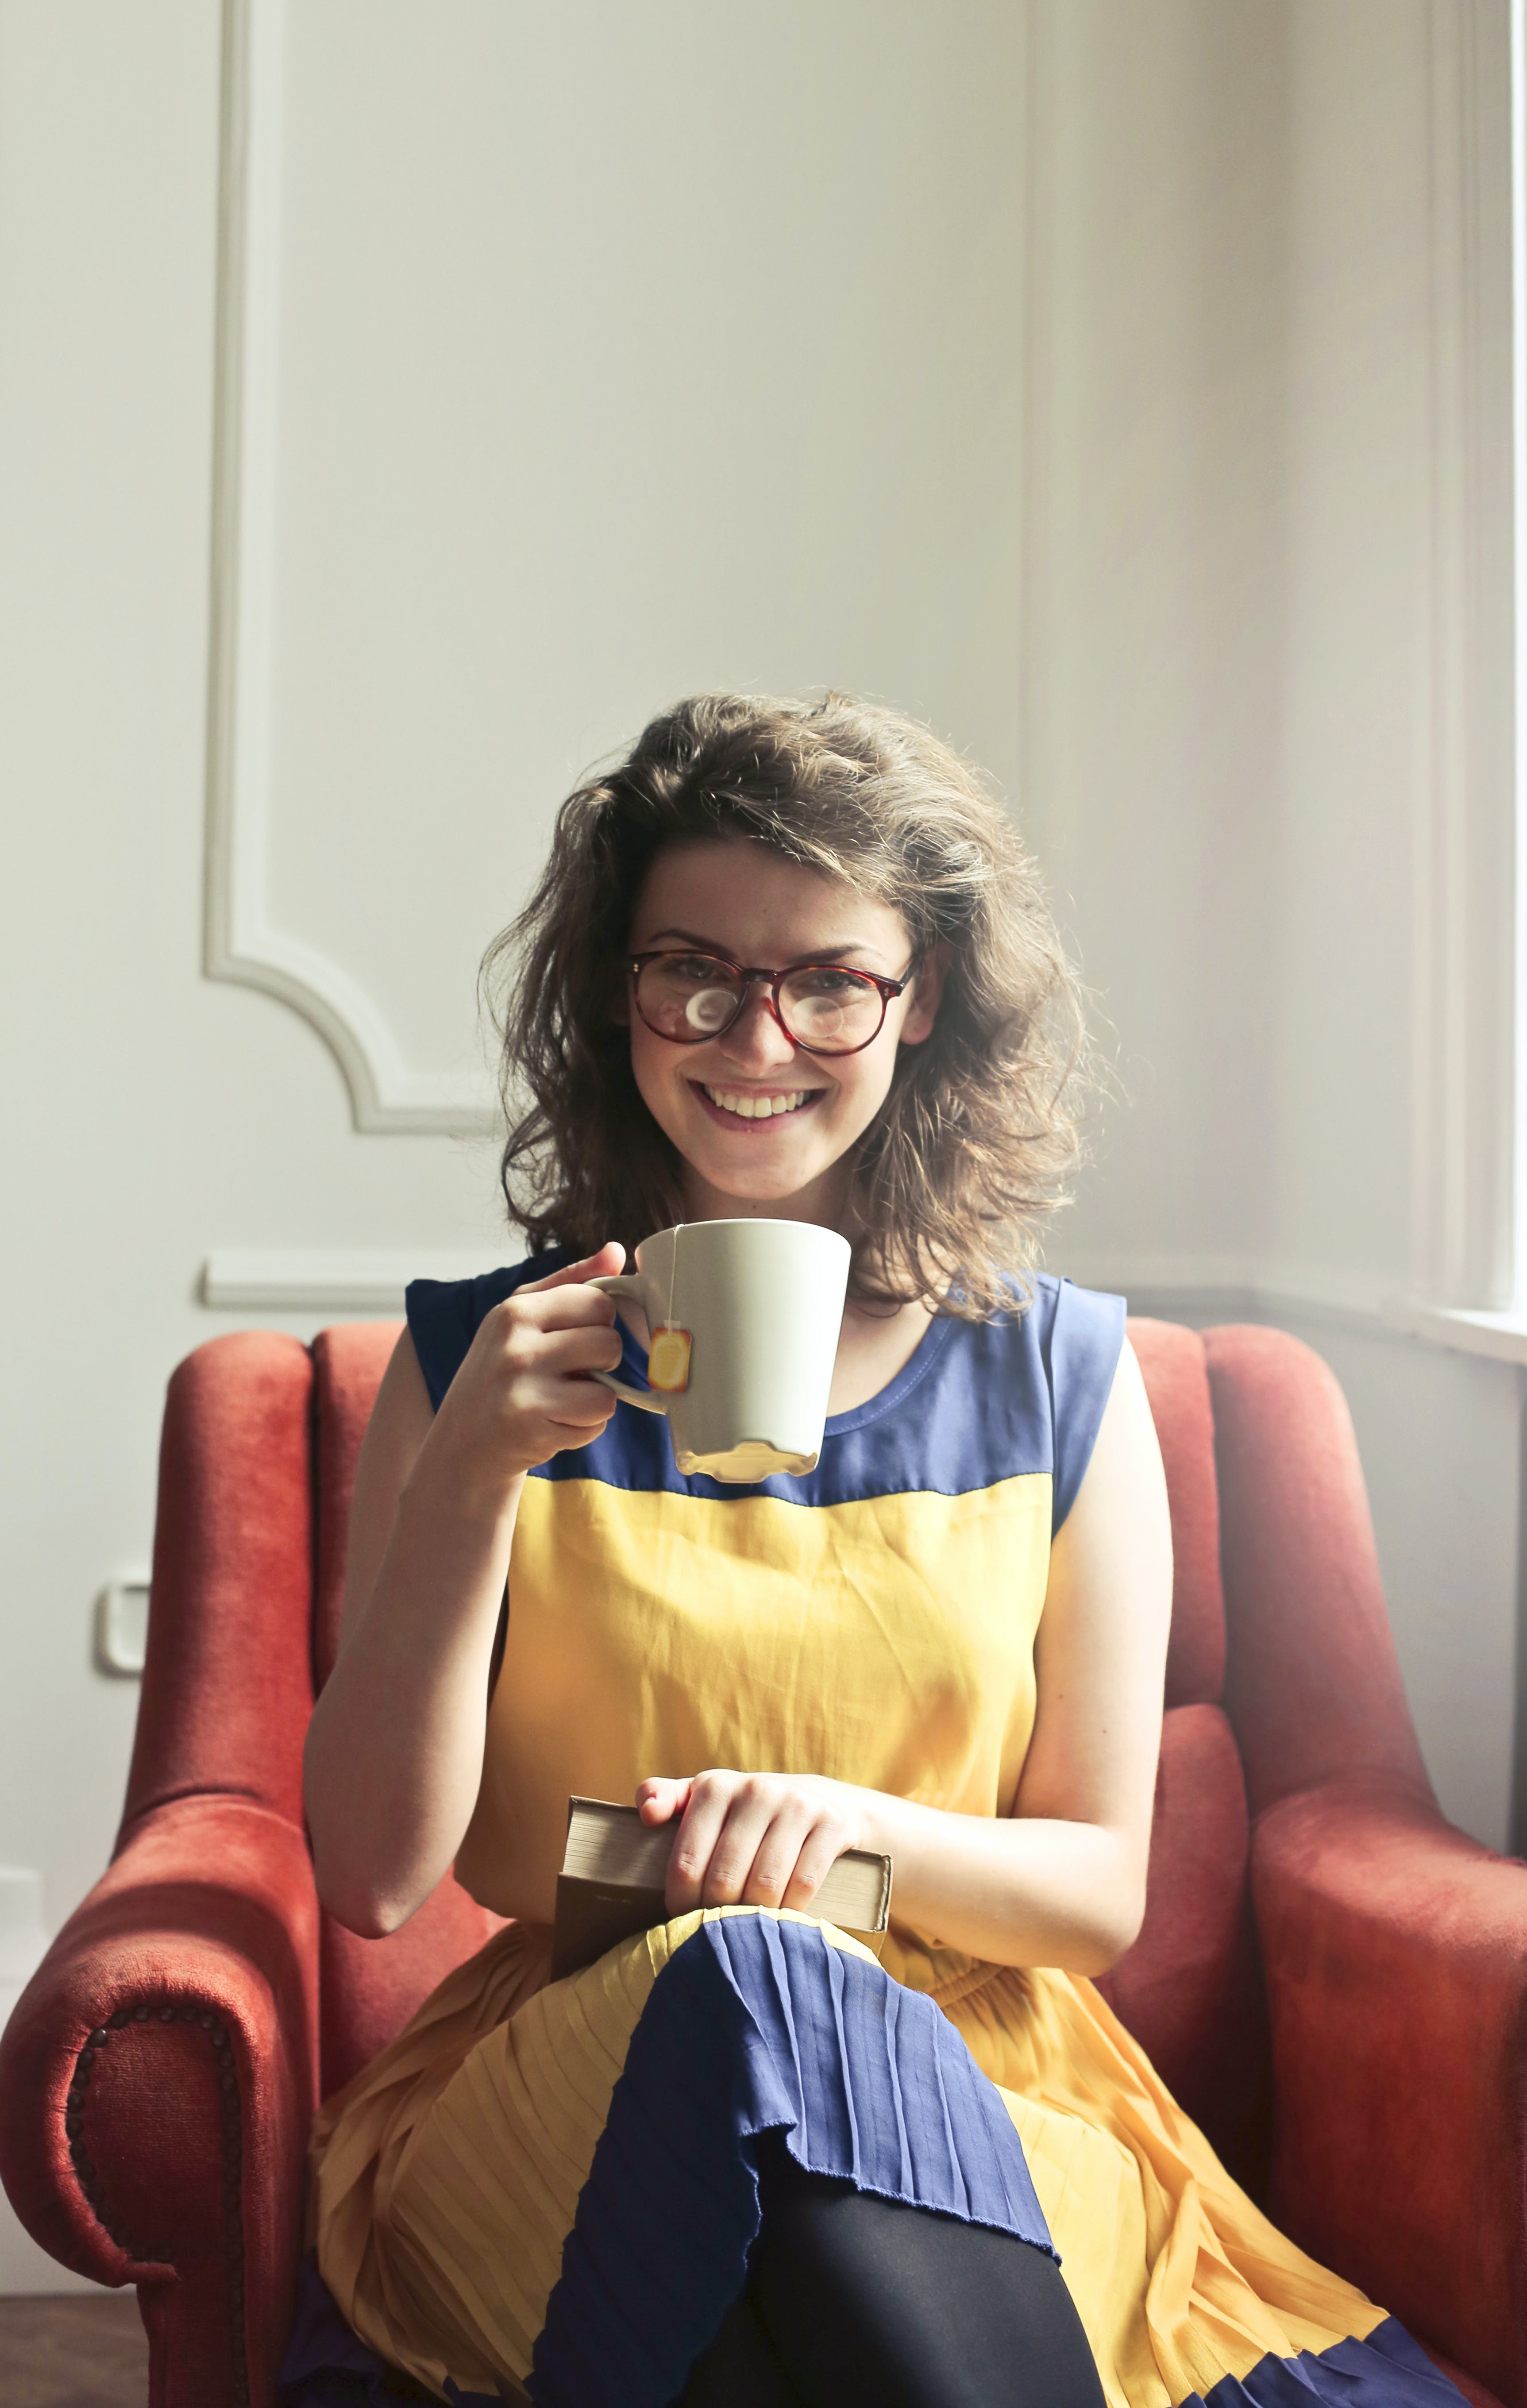 Free stock photo of person, woman, cup, girl